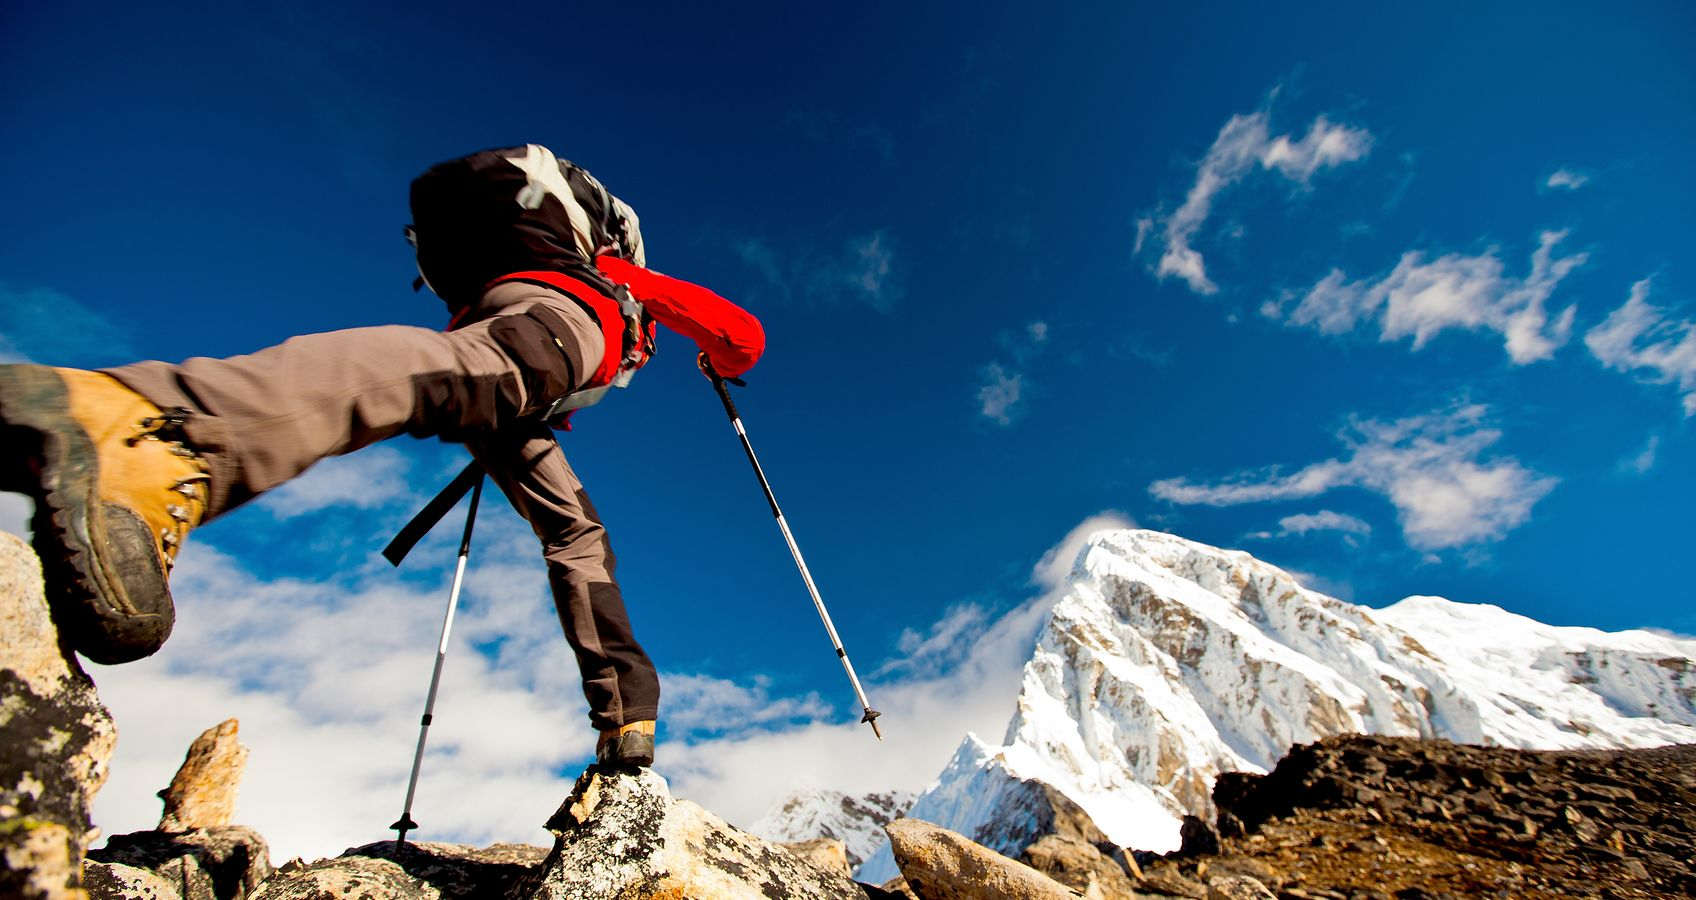 When it comes to core competencies, actions speak louder than words